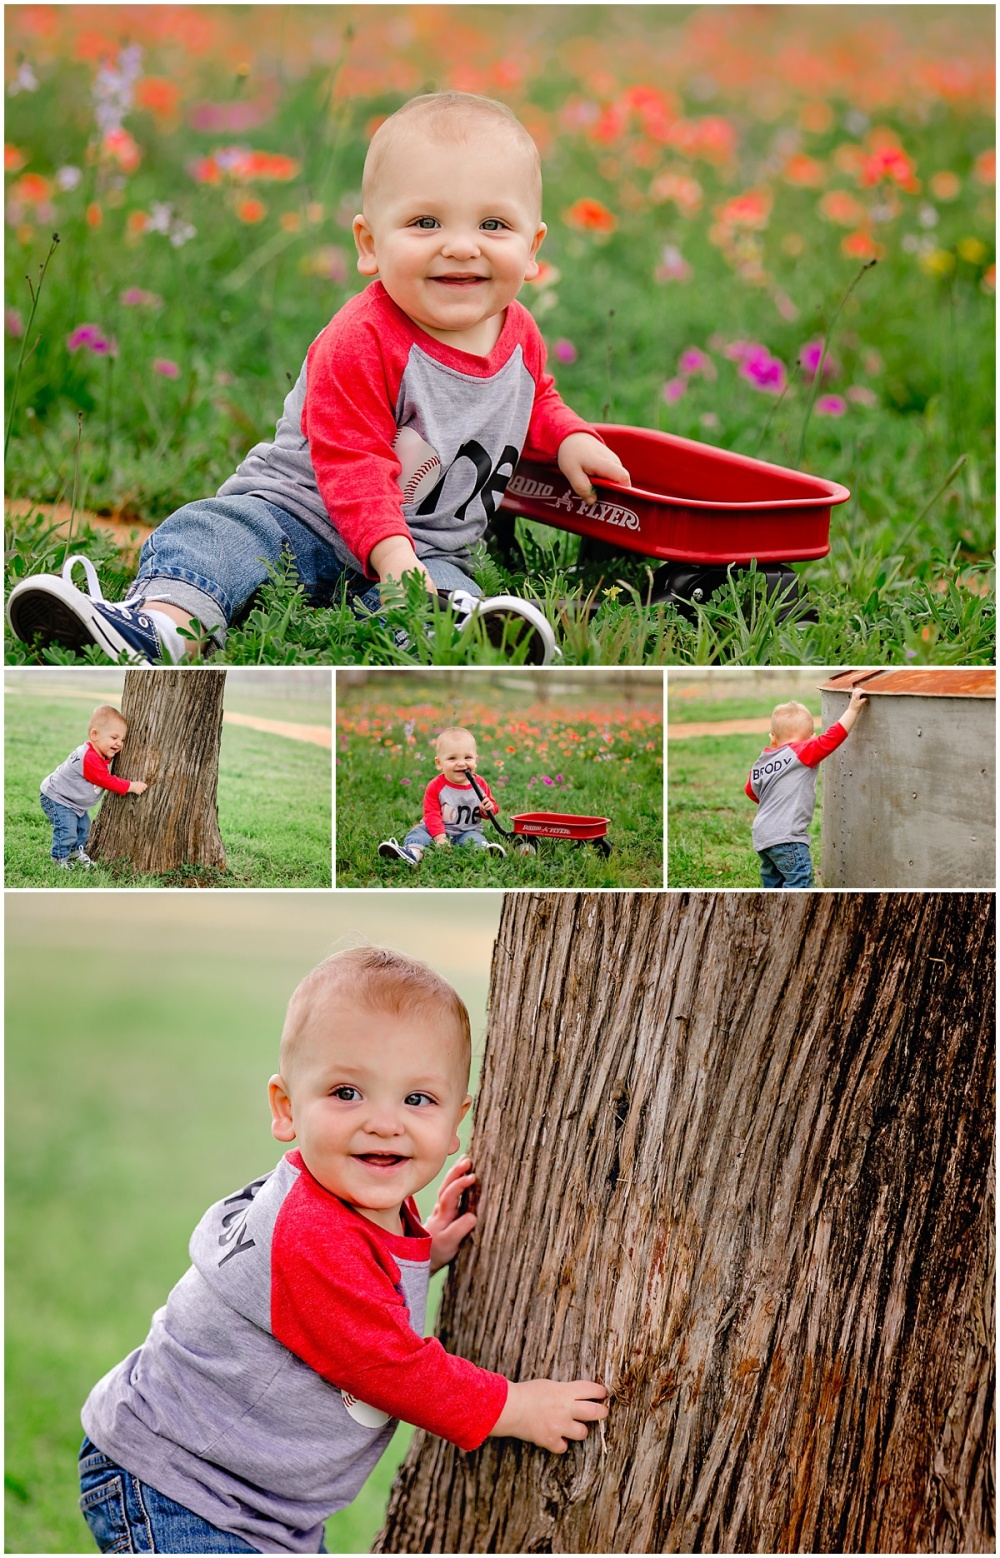 Cake-Smash-Baseball-Theme-First-Birthday-Carly-Barton-Photography_0003.jpg